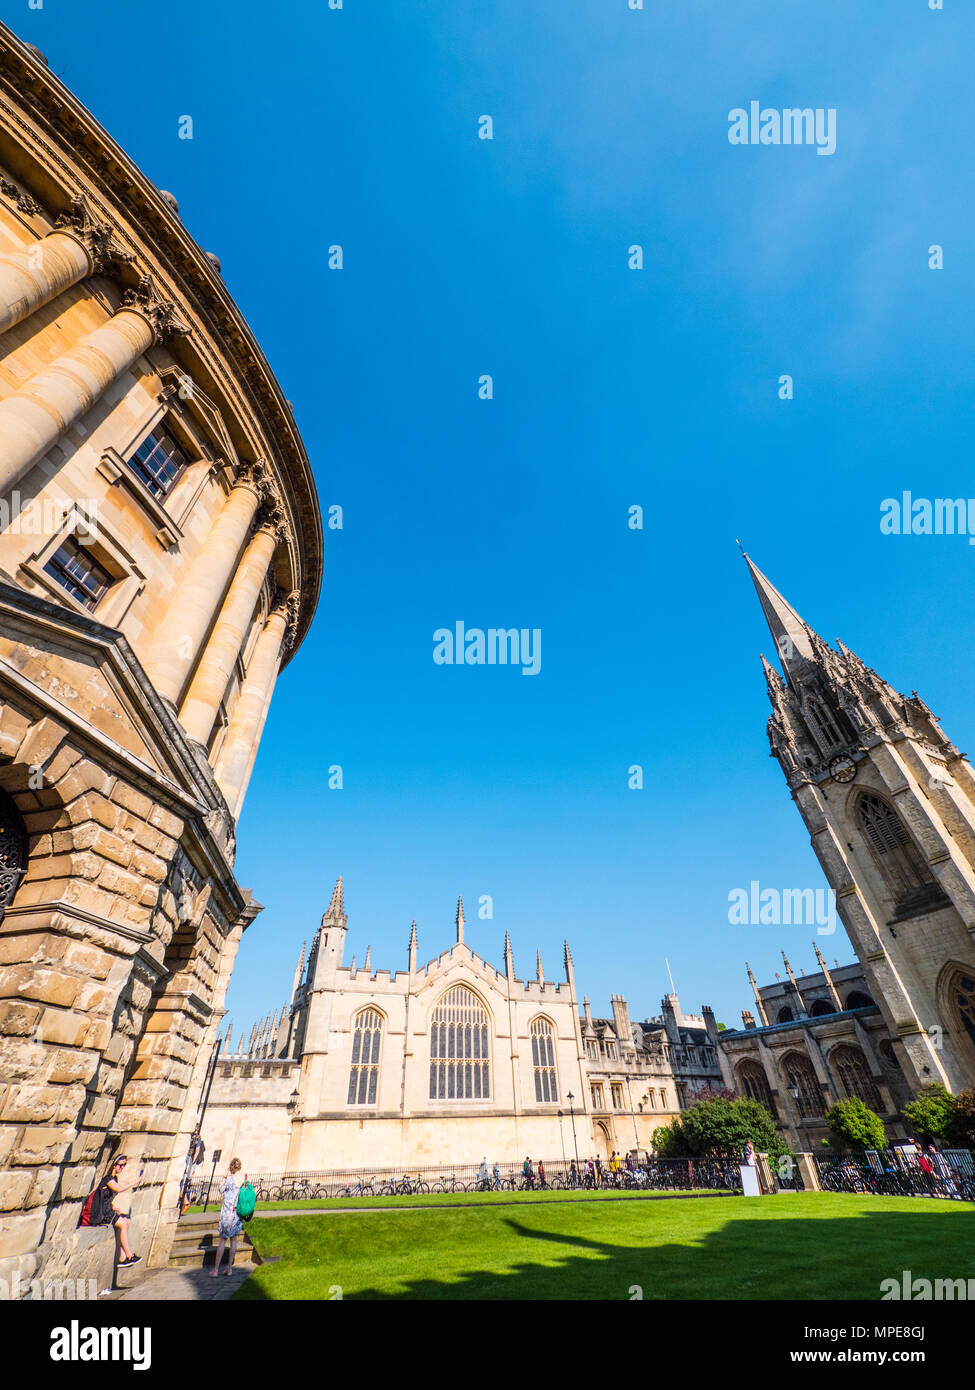 Radcliffe Camera, All Souls College, and University Church of St Mary the Virgin, Radcliffe Square, Oxford, Oxfordshire, England, UK, GB. - Stock Image